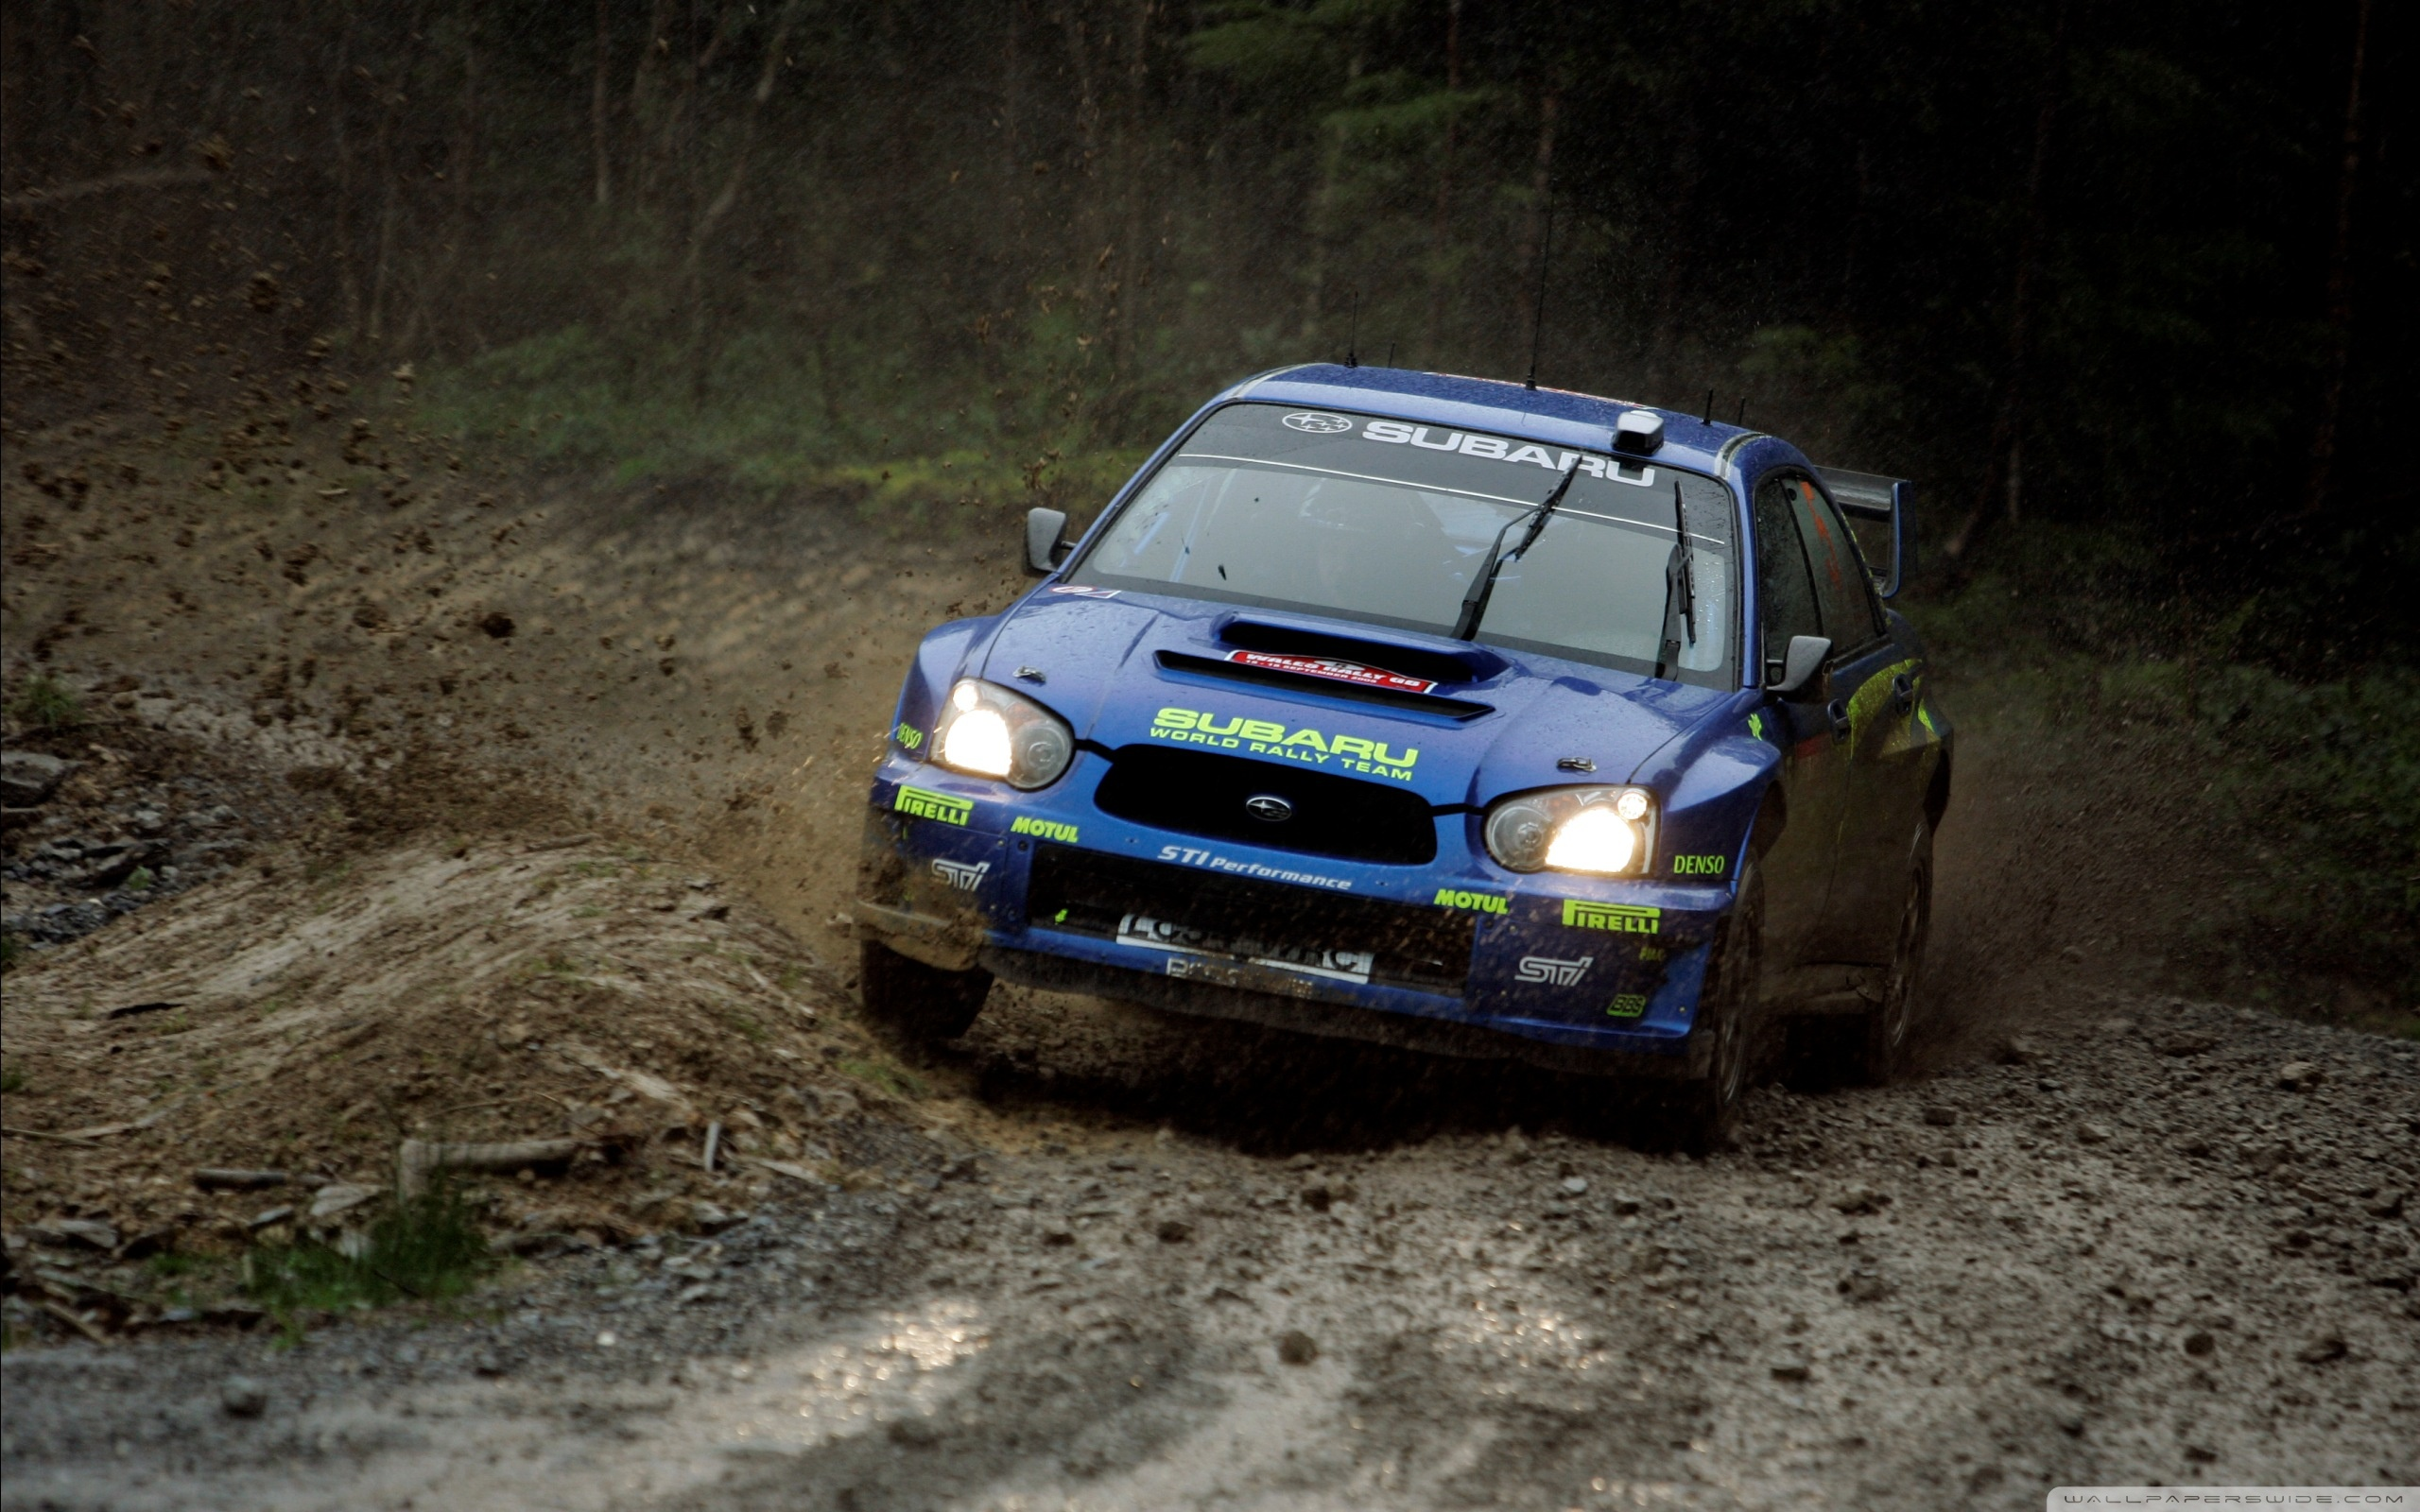 2560x1600 - Rallying Wallpapers 26